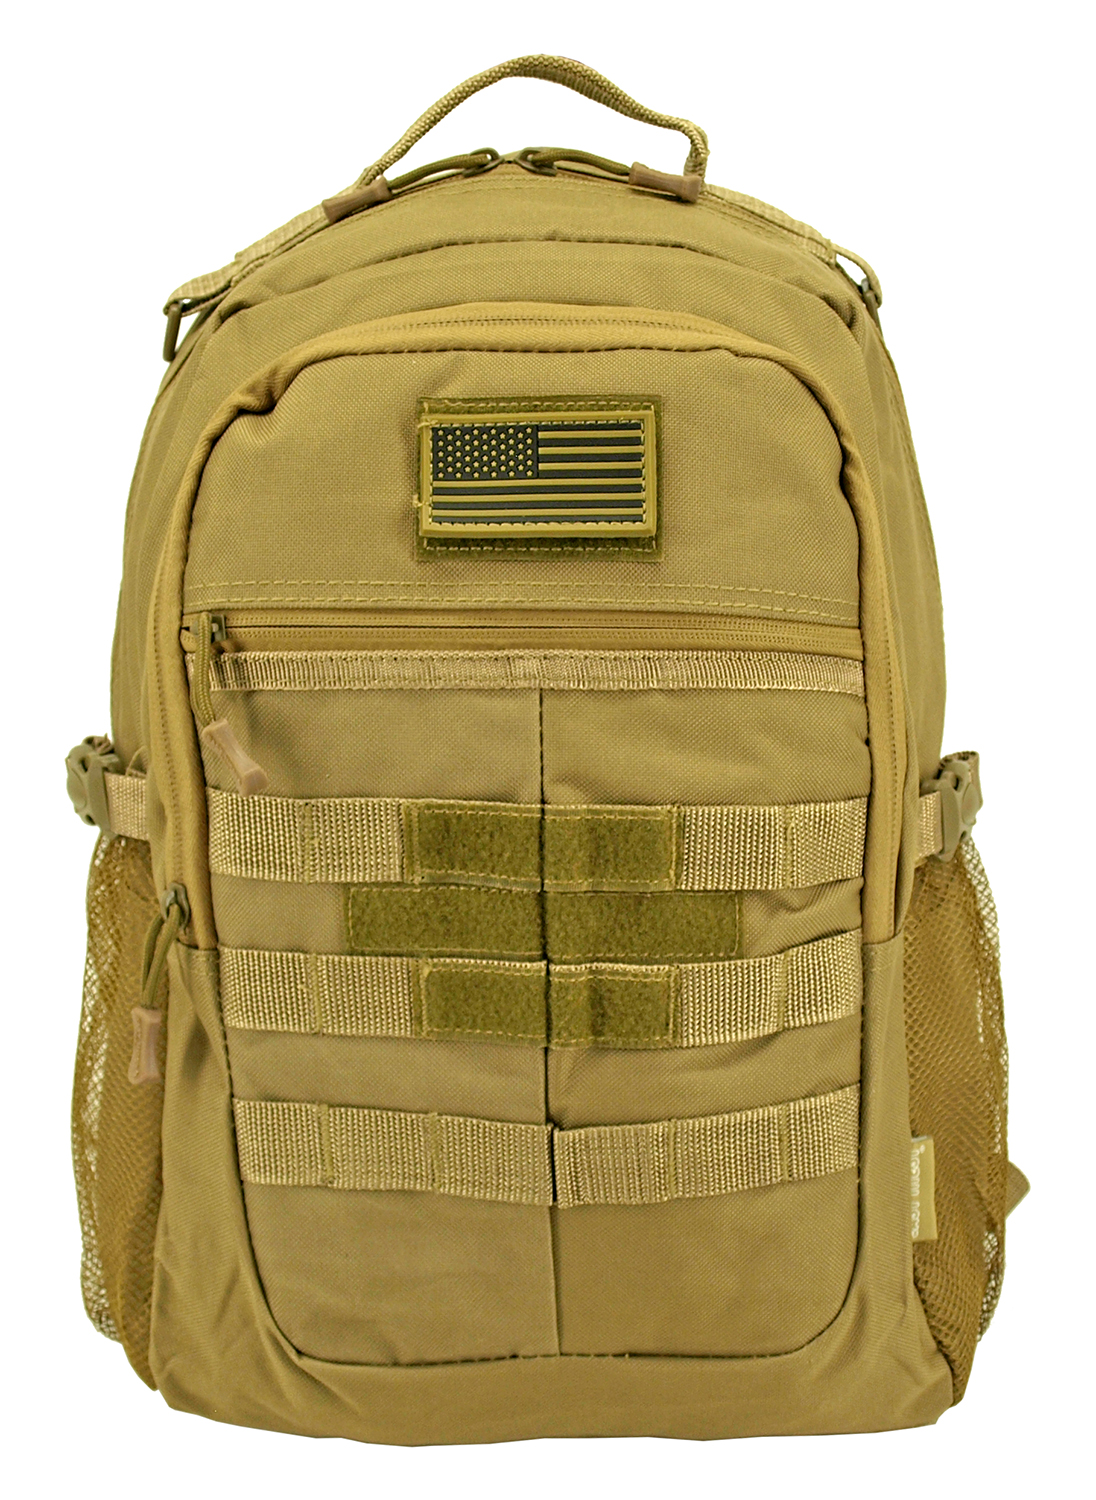 The Tactical Tradition Backpack - Desert Tan